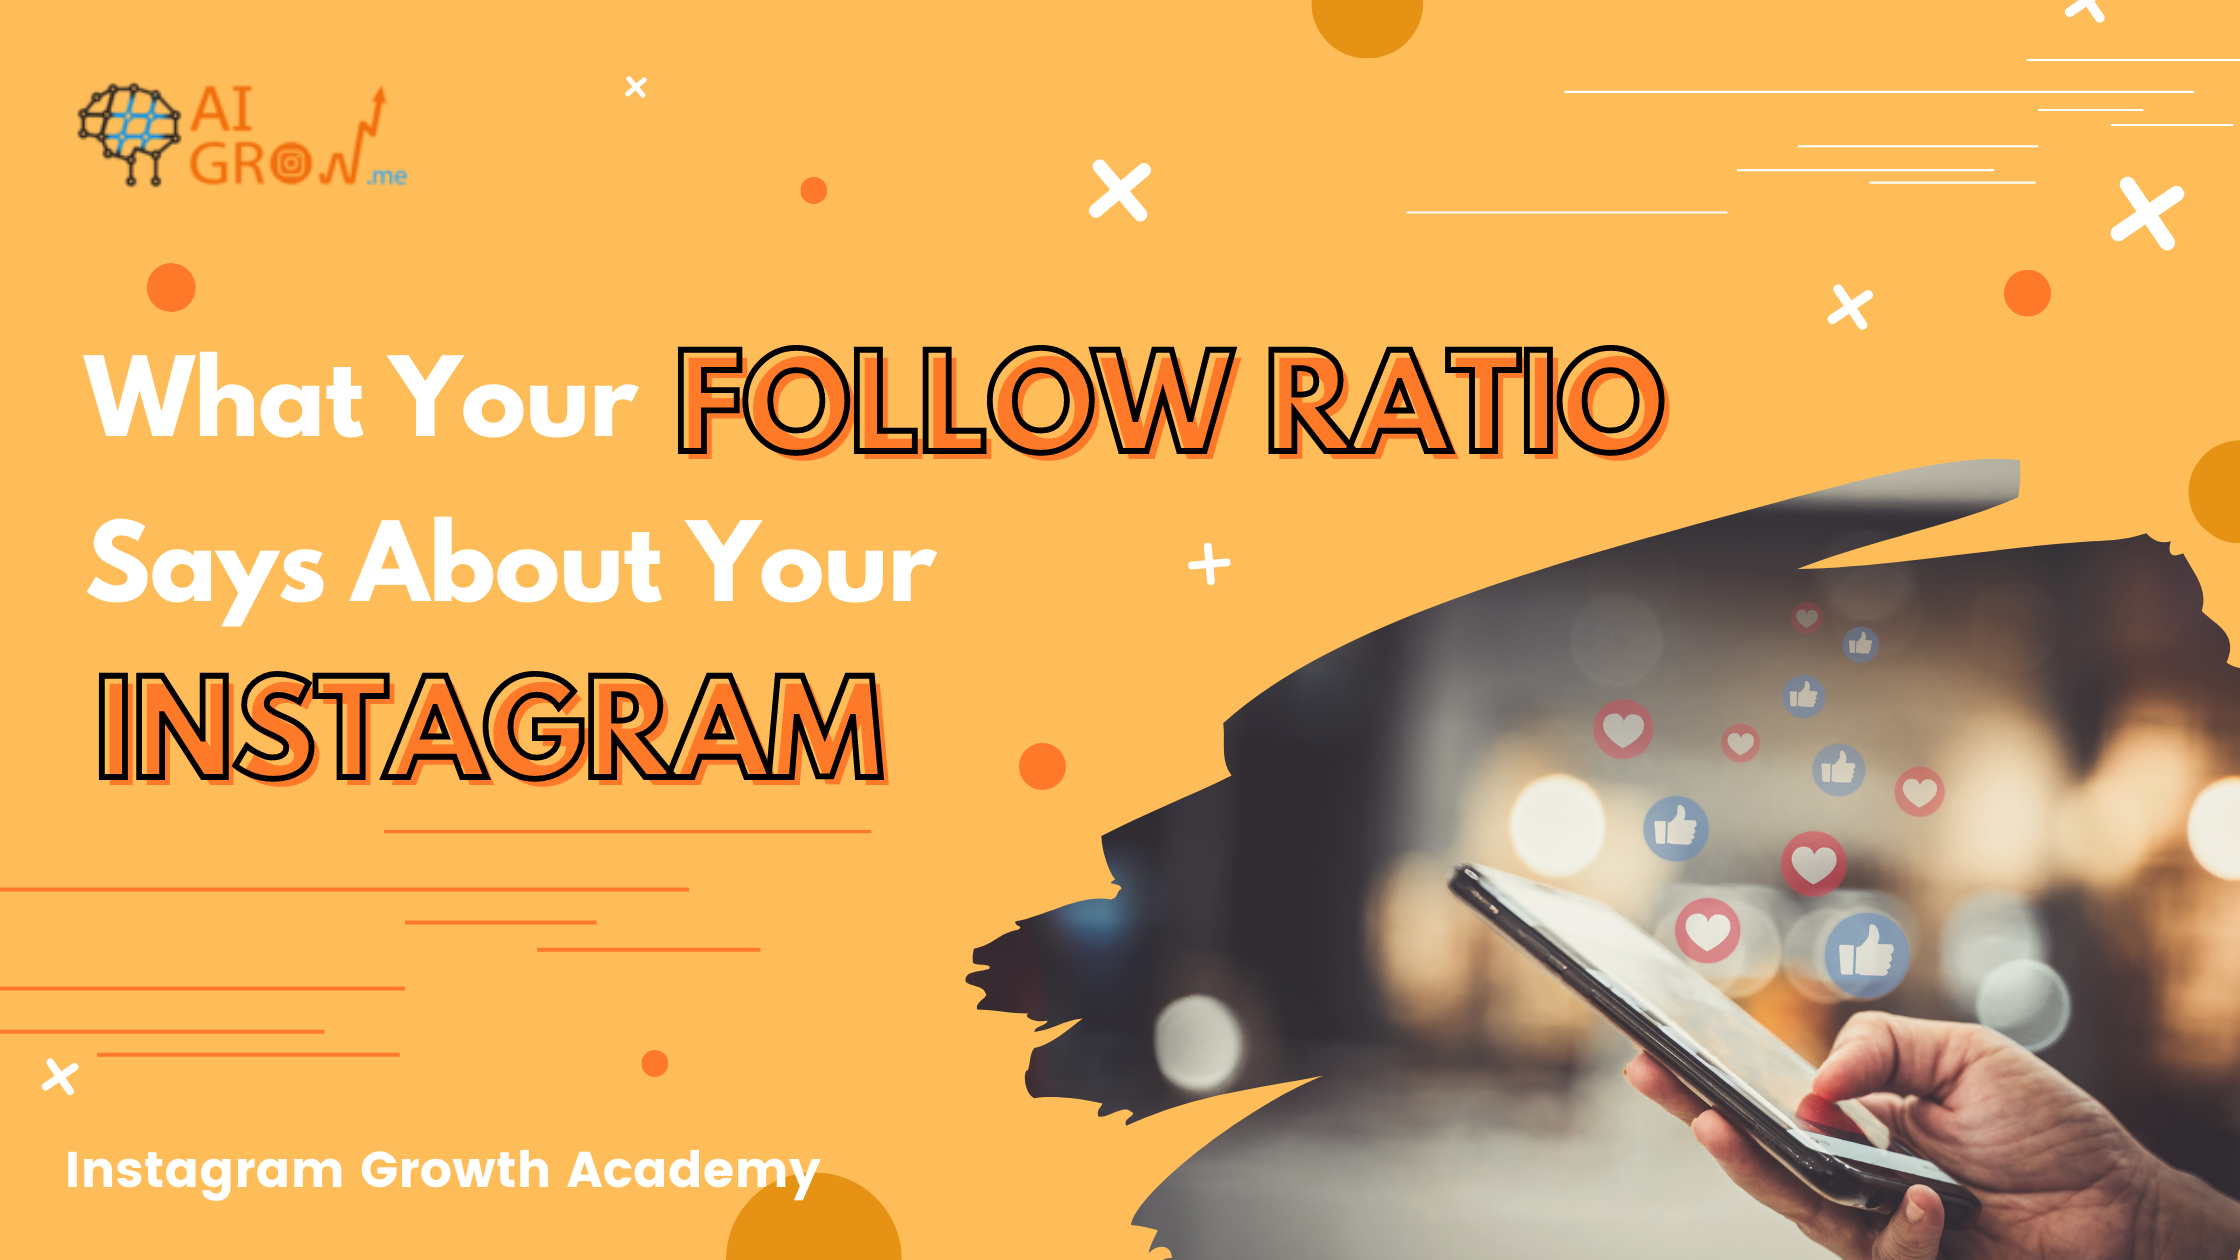 What Your Follow Ratio Says About Your Instagram